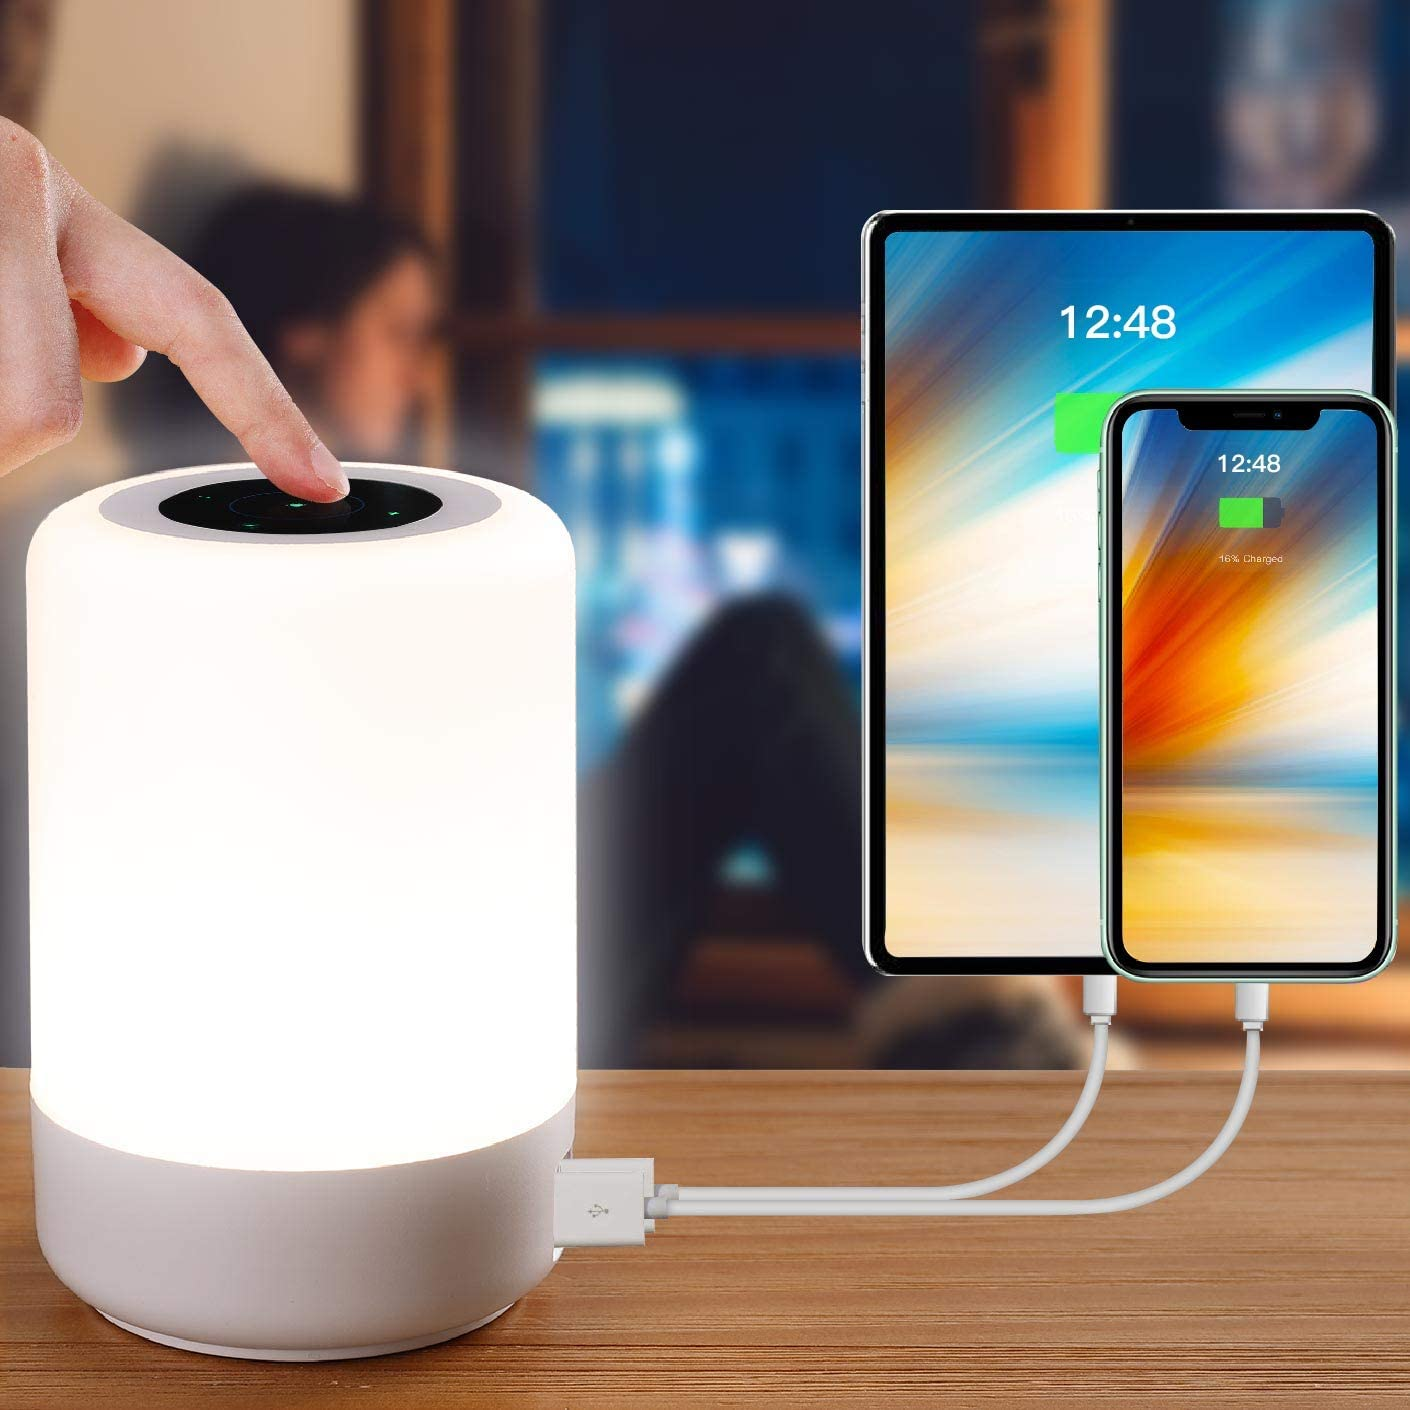 Table Lamp-Touch Sensor Lamp for Kids Bedroom, Rechargeable Dimmable Portable Table Bedside Lamps with White Light + RGB Color Changing for Rea